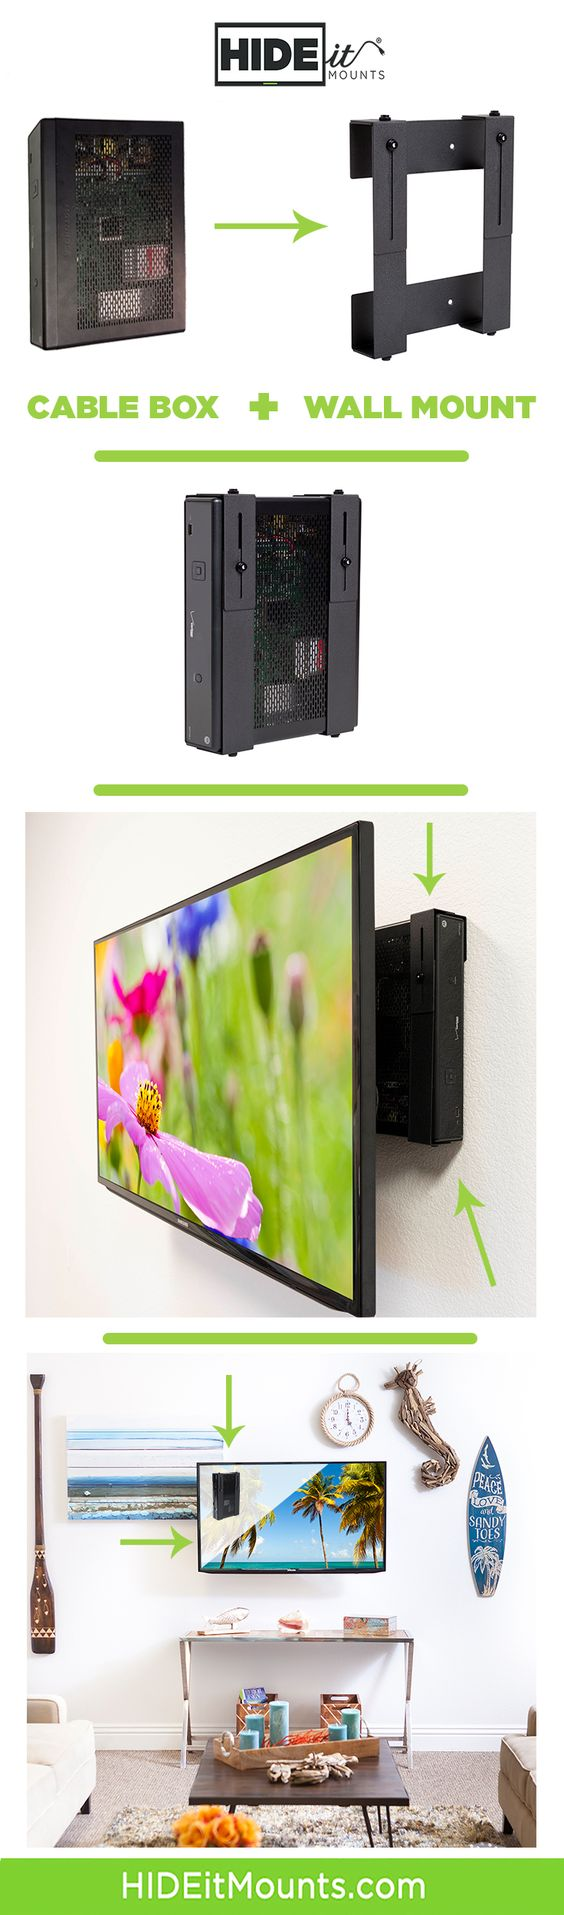 HIDEit Mounts  Gaming Wall Mounts - Cable Box Wall Mounts | Apple PS3 Wii  Xbox Roku DirecTV AT Definitely getting this mount for the cable box &